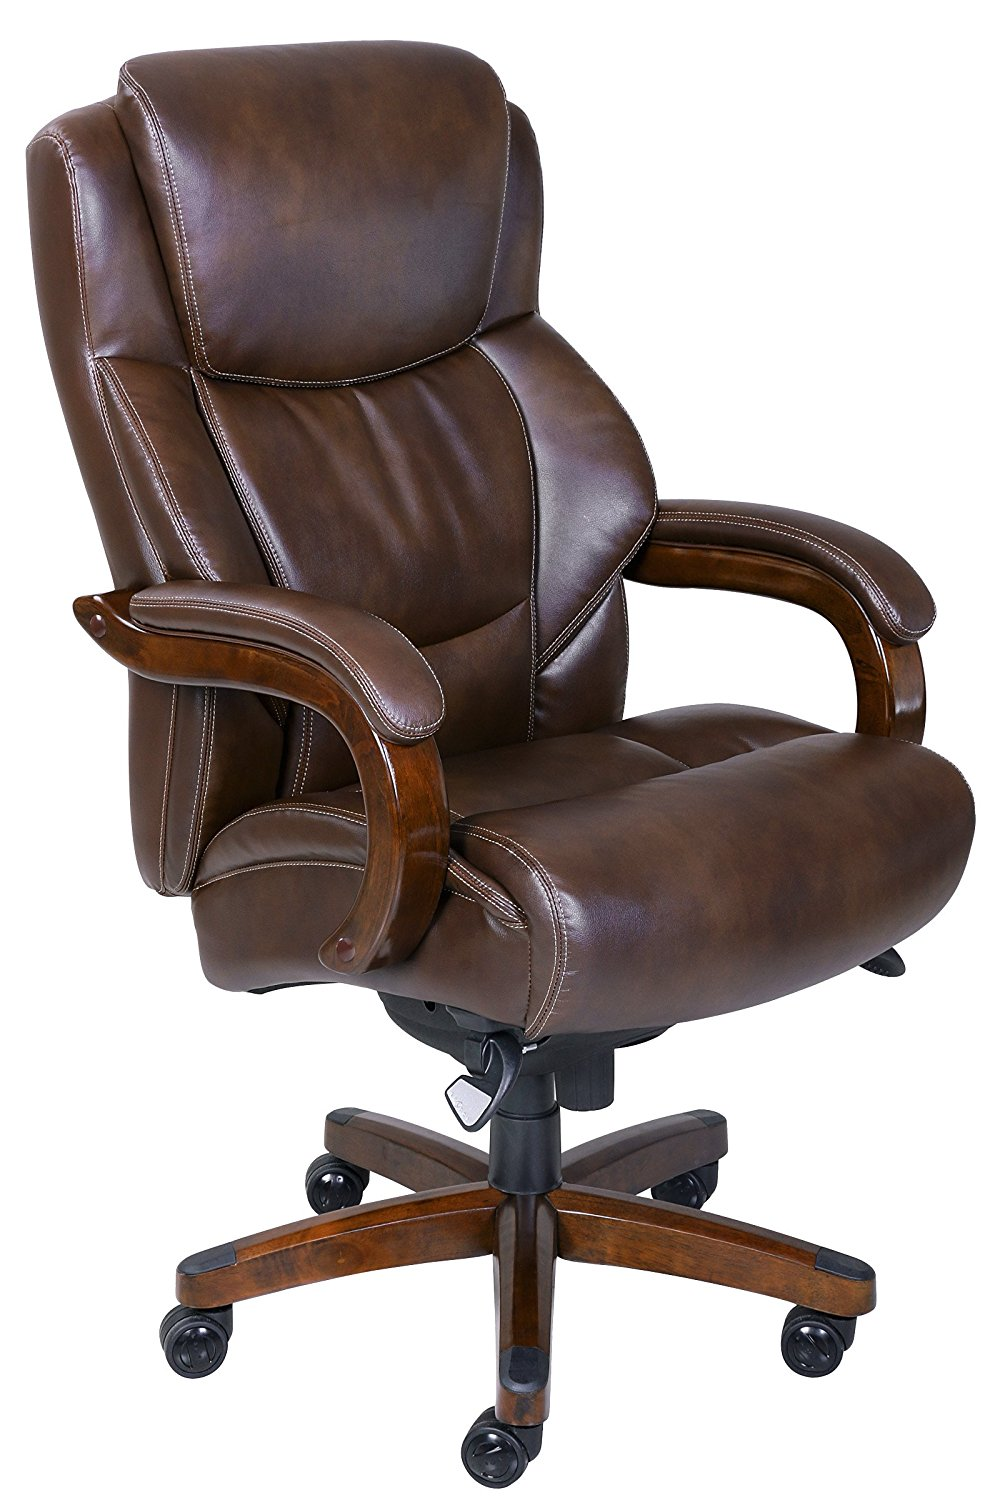 Executive Office Chair For Heavy People Best Heavy Duty